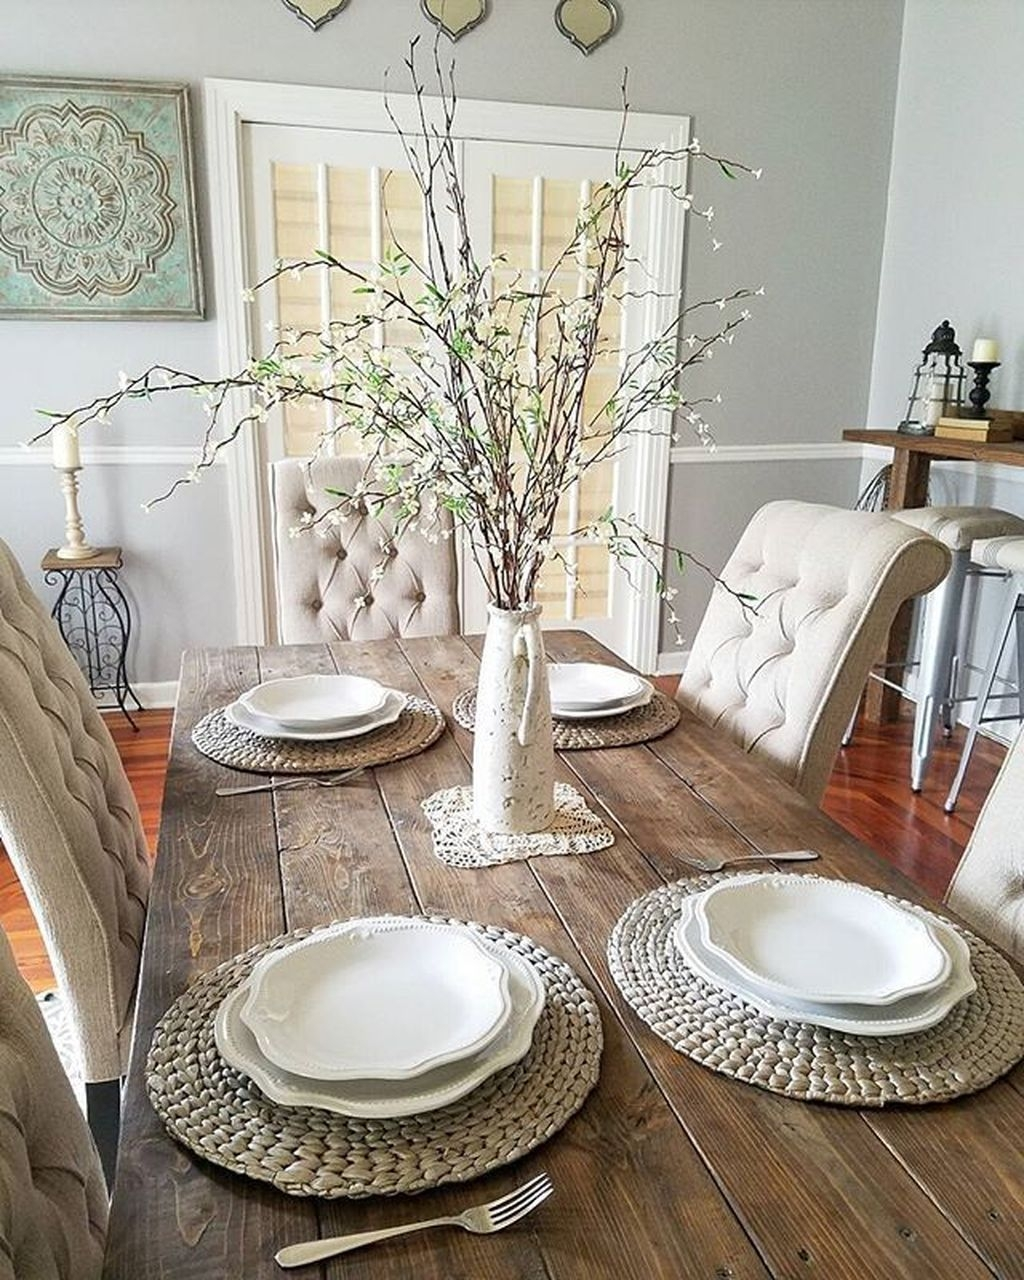 Popular Farmhouse Dining Room Design Ideas Trend 2019 34